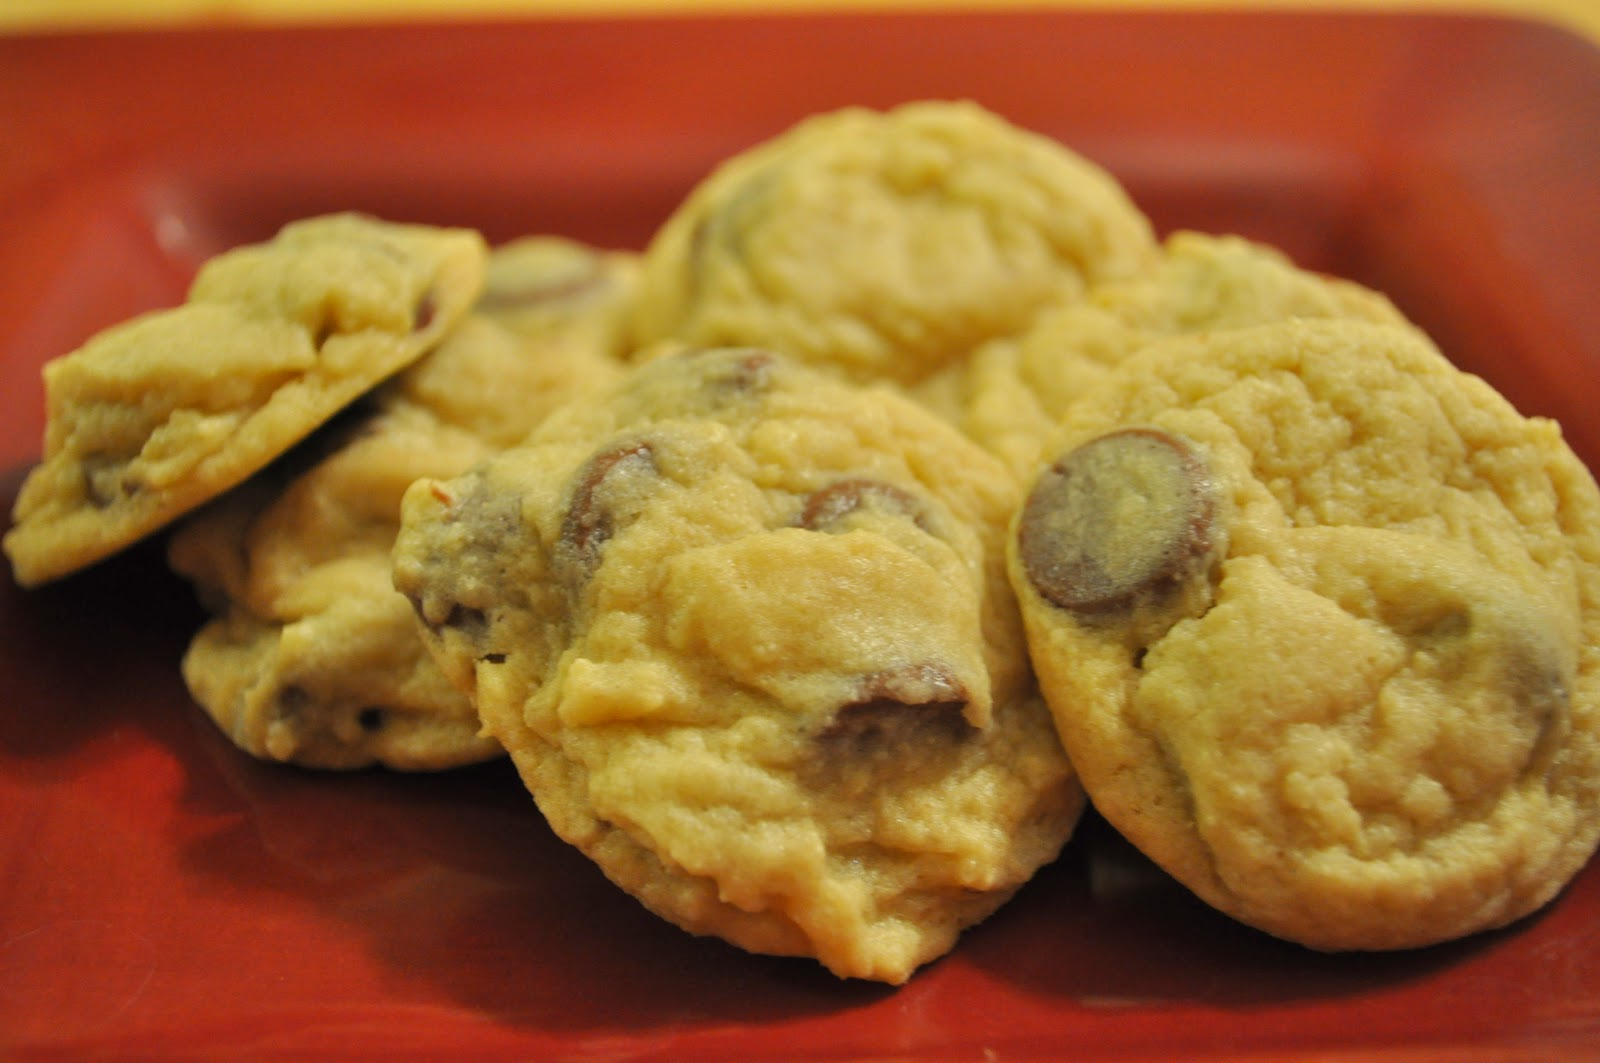 famfriendsfood: Chocolate Chip Pudding Cookies from Stephanie's ...